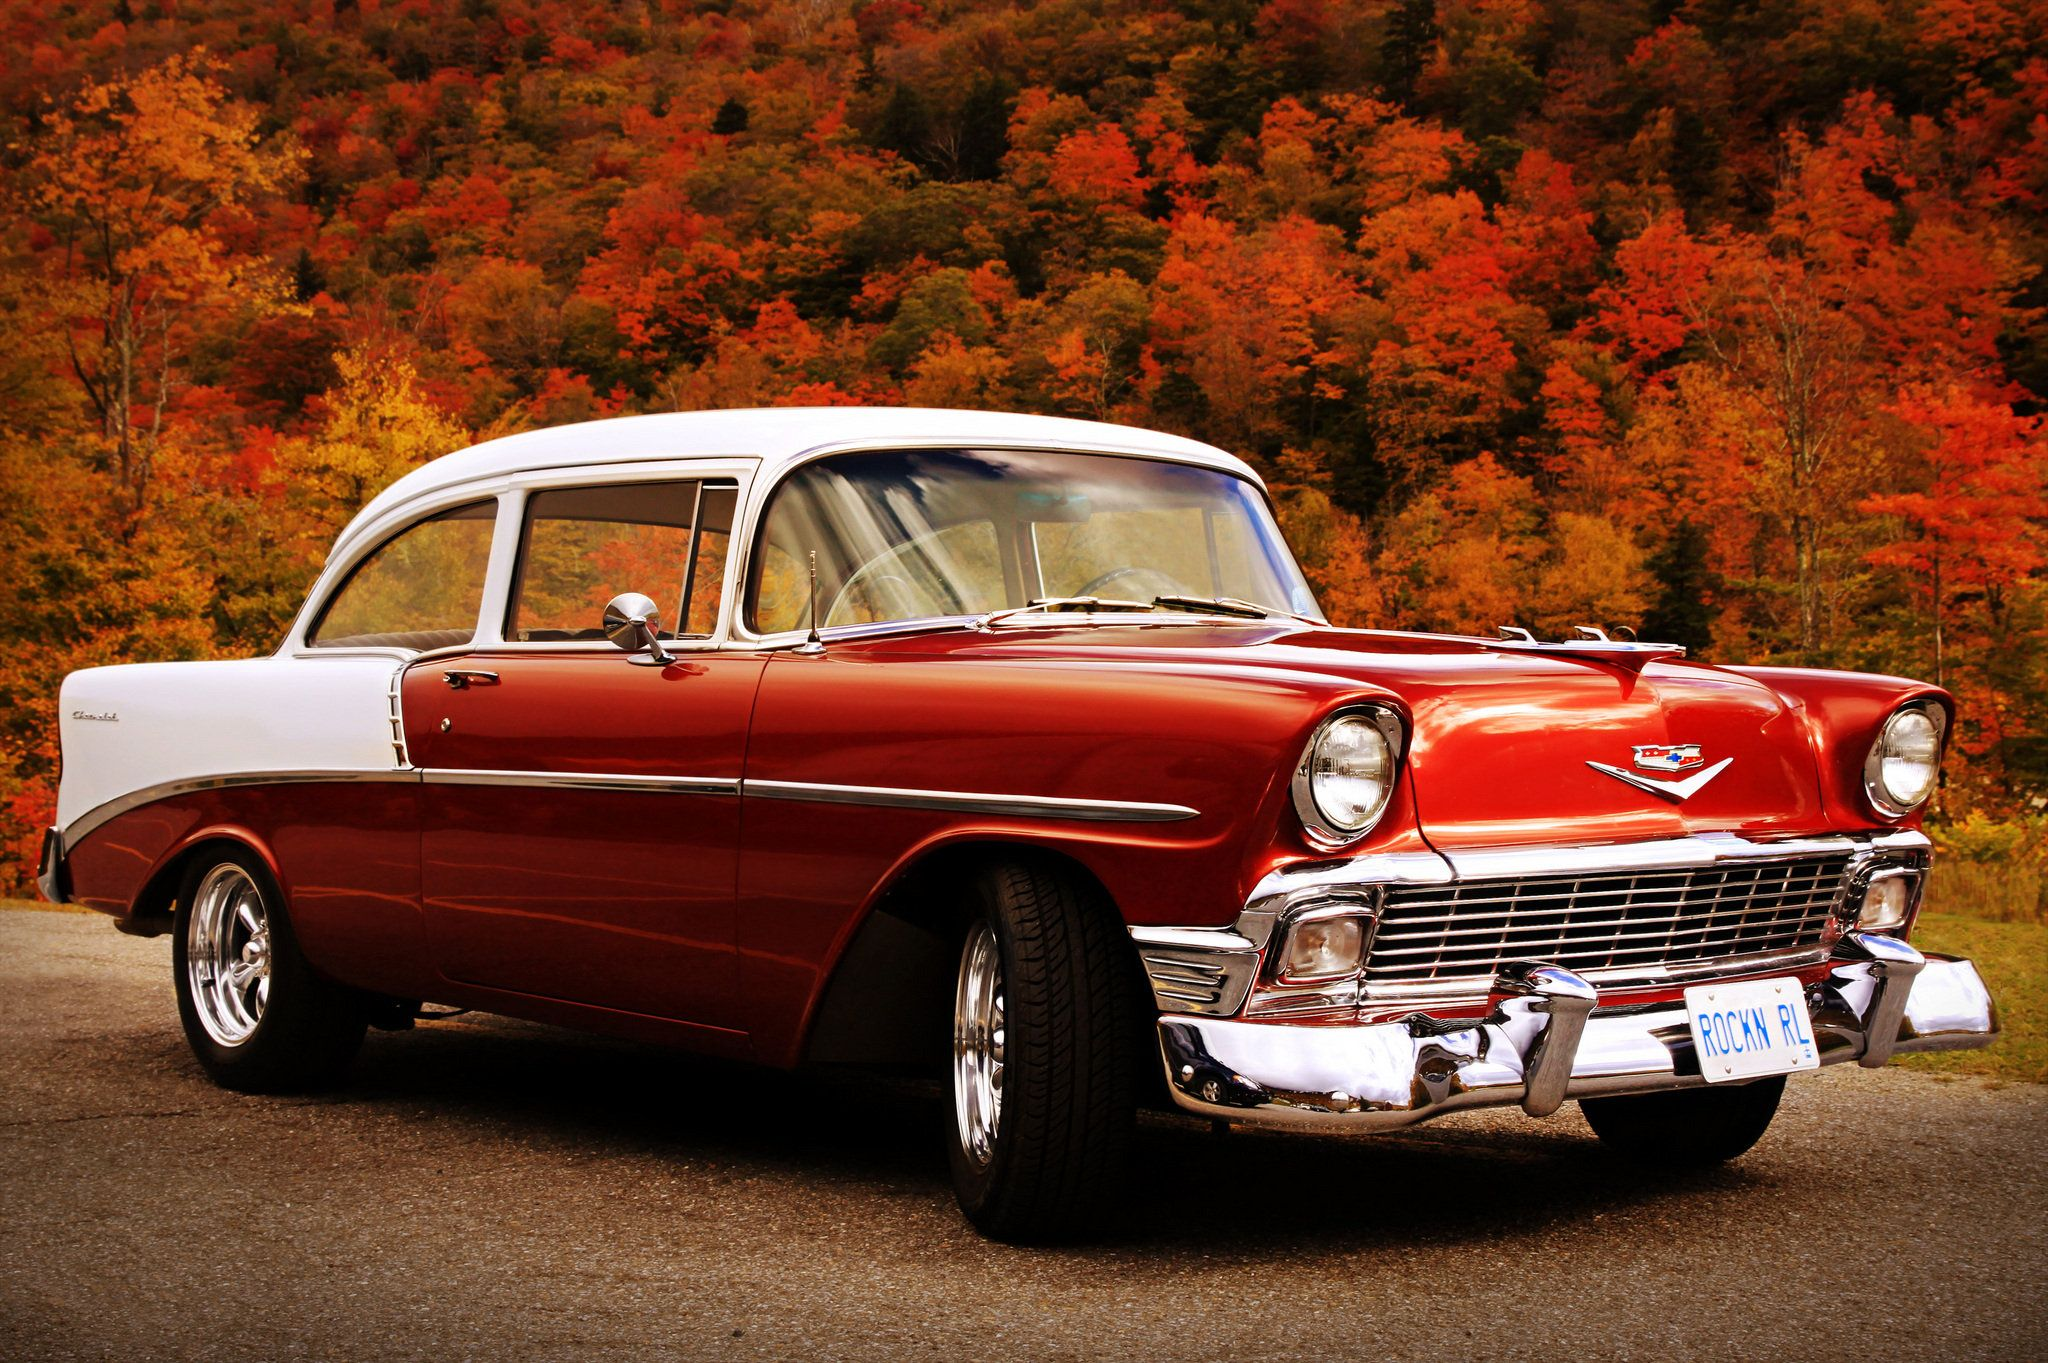 Related Keywords Amp Suggestions For Old Chevy Nice Rides